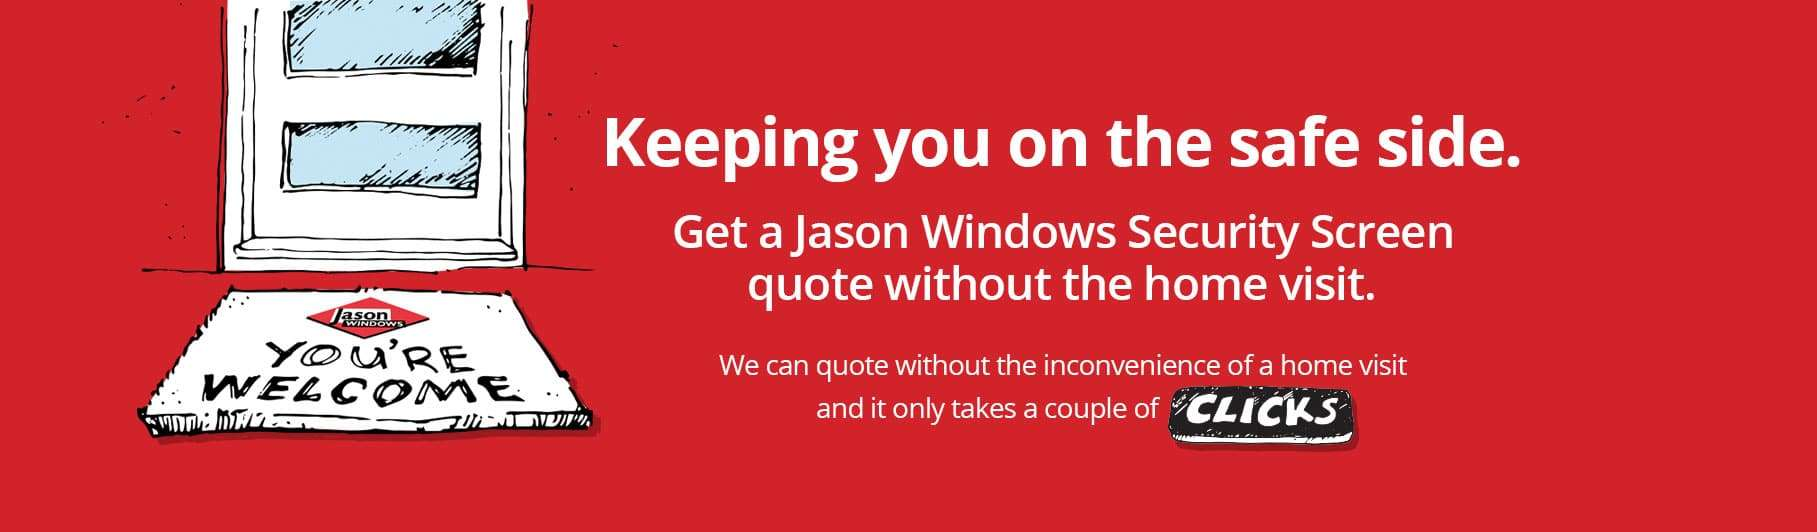 Get a Jason Windows Screen quote without the home visit